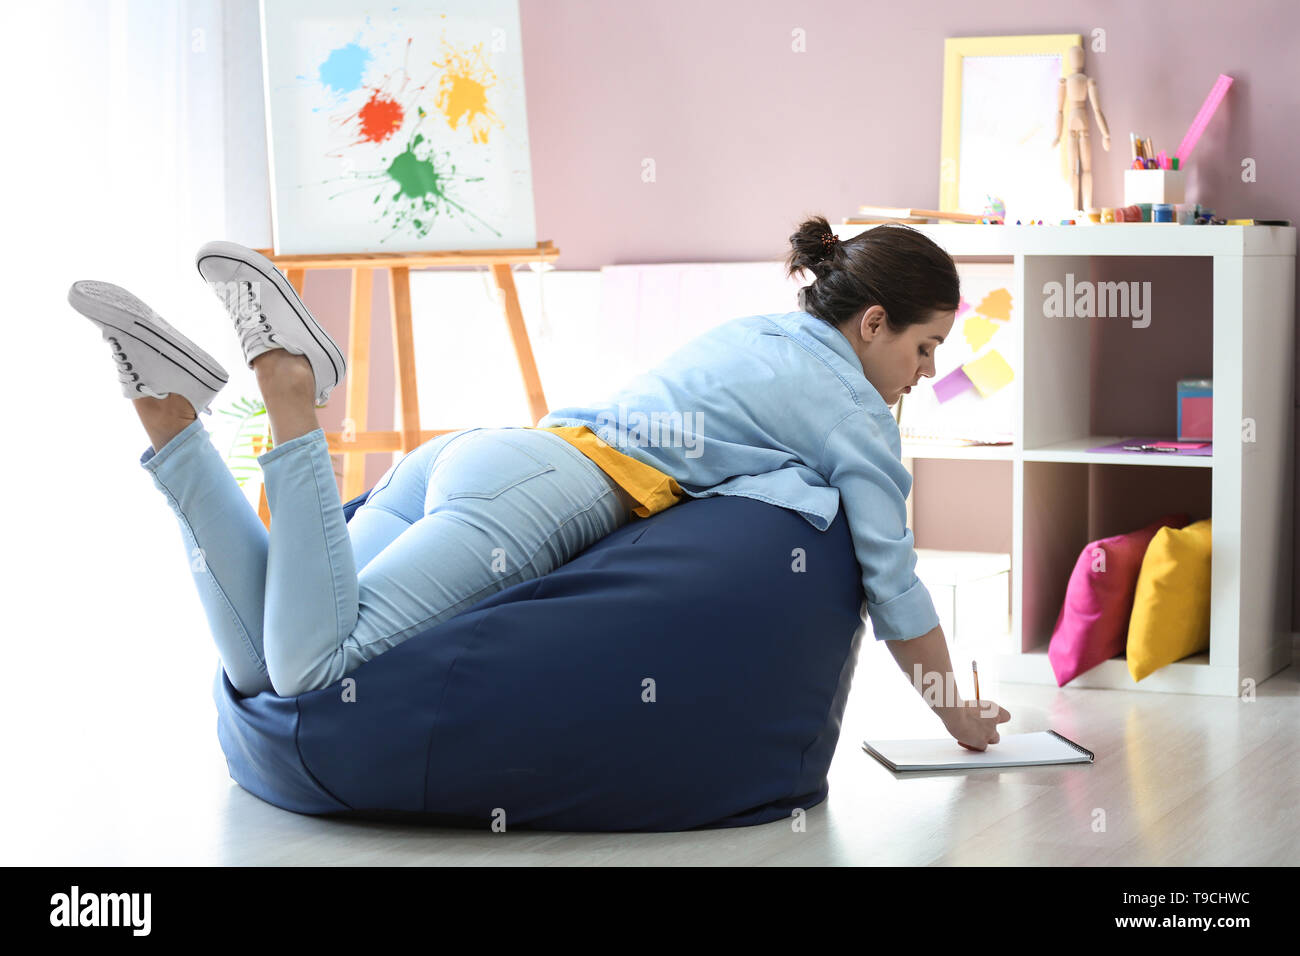 Young female painter on beanbag chair in studio - Stock Image